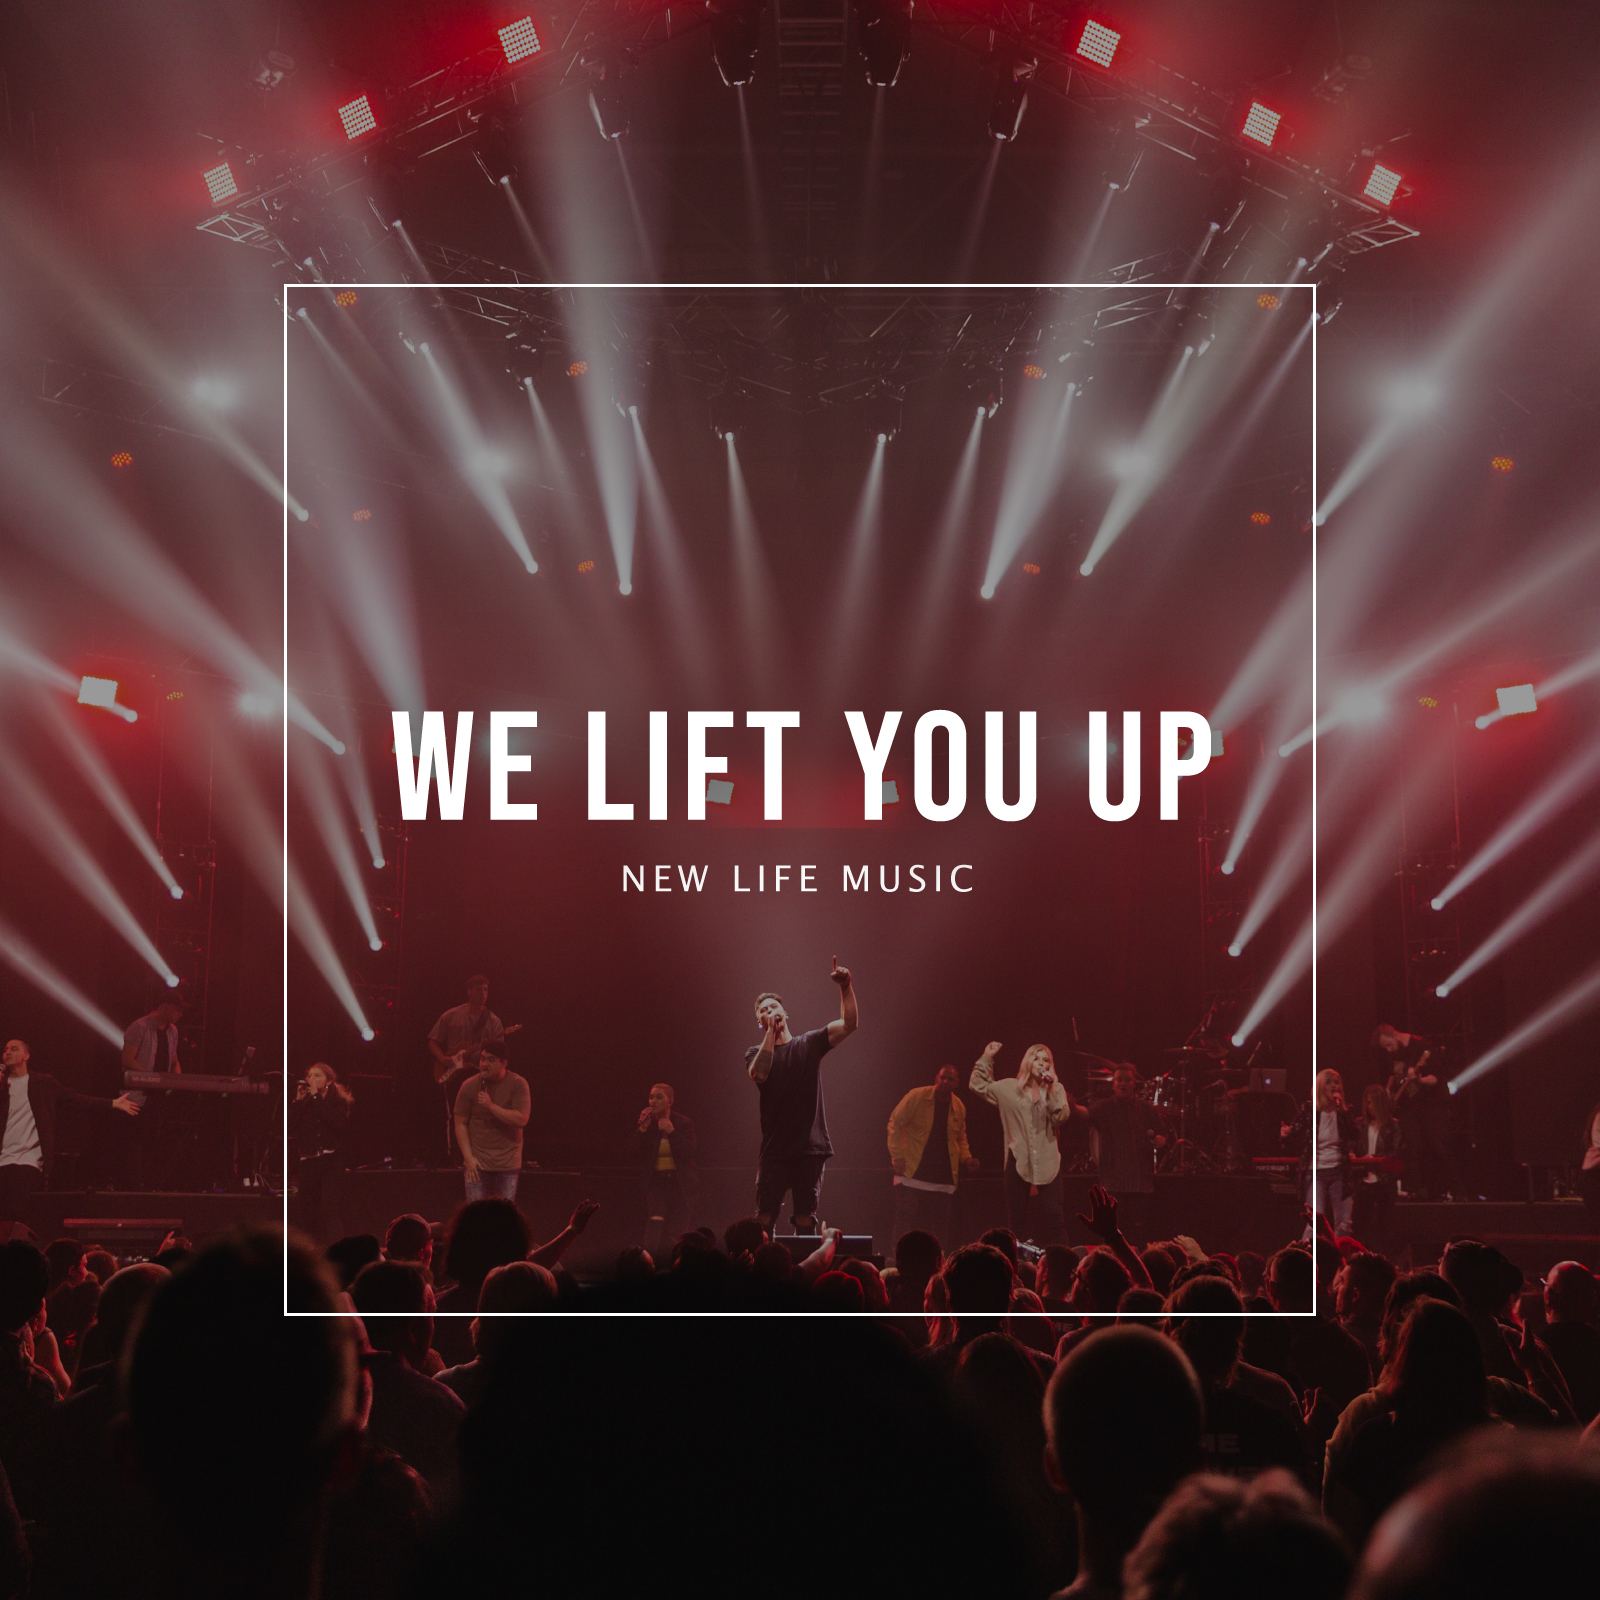 We Lift You Up Album Art